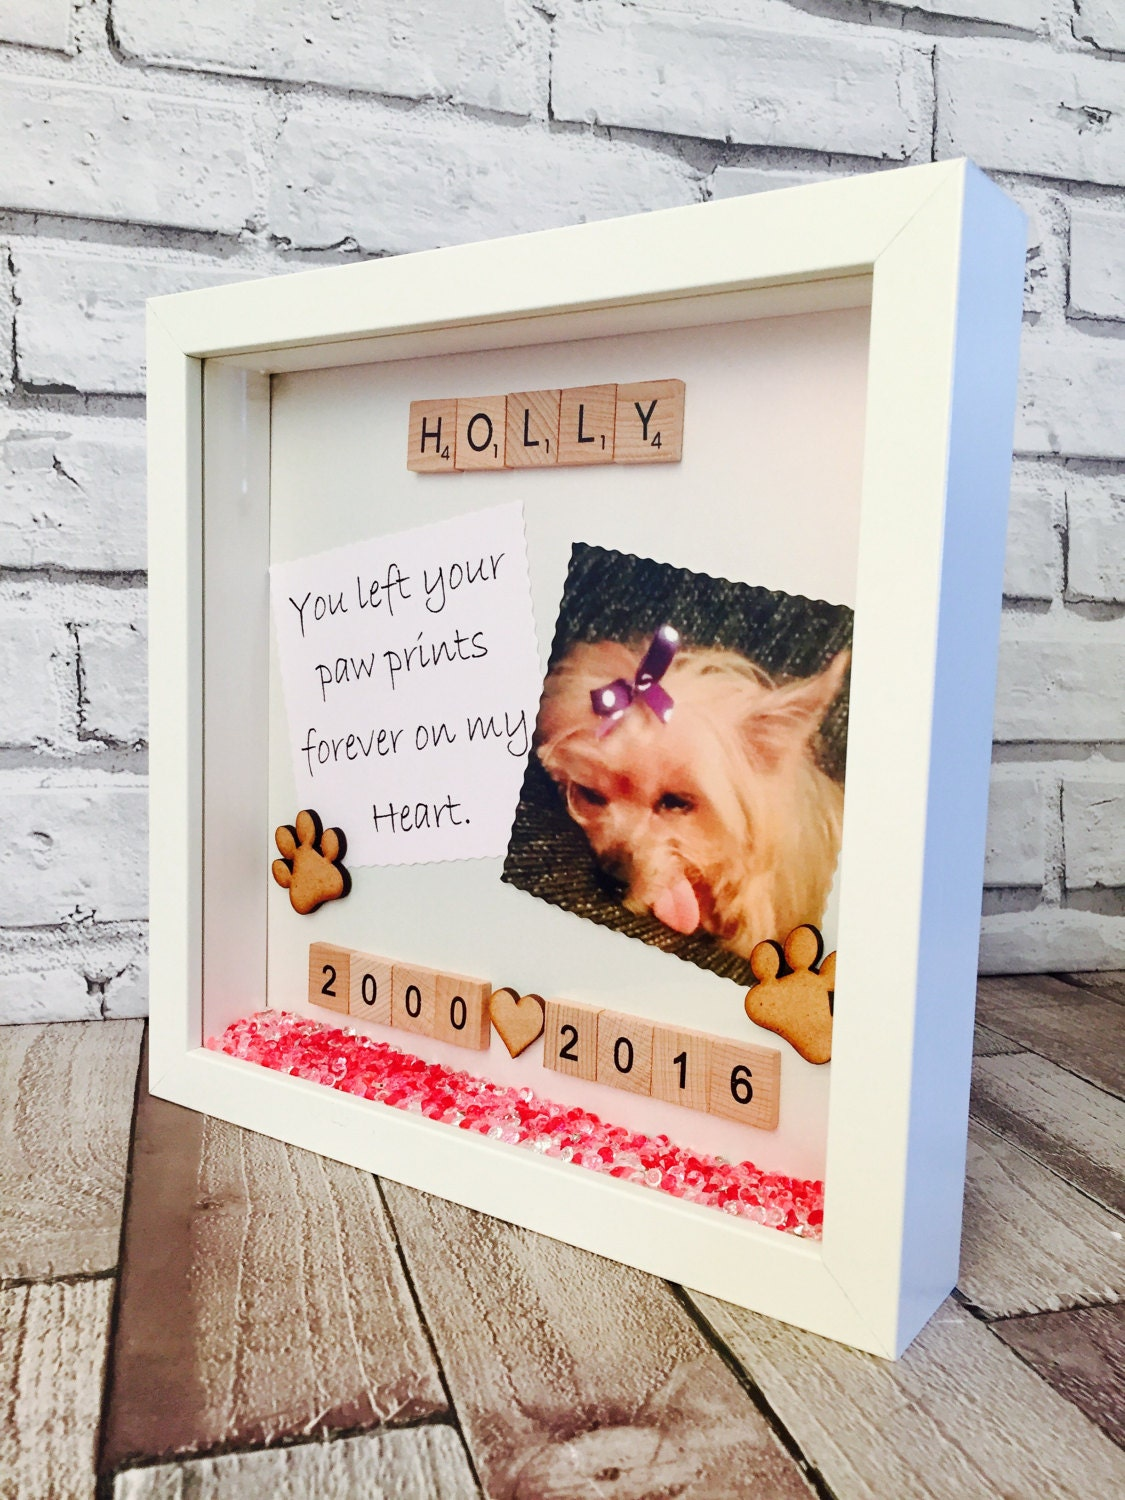 pet memory frame pet sympathy frame personalised pet memory frame family pet picture frame family pet frame family pet keepsake framed